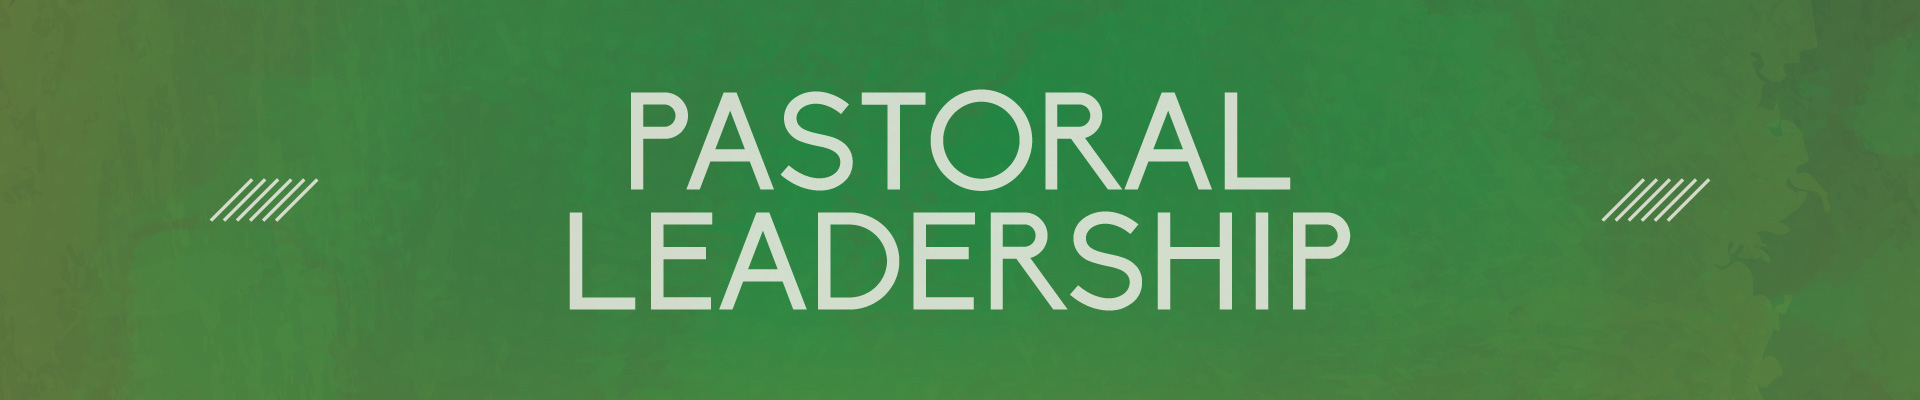 Pastoral Leadership | Baptist General Convention of Oklahoma